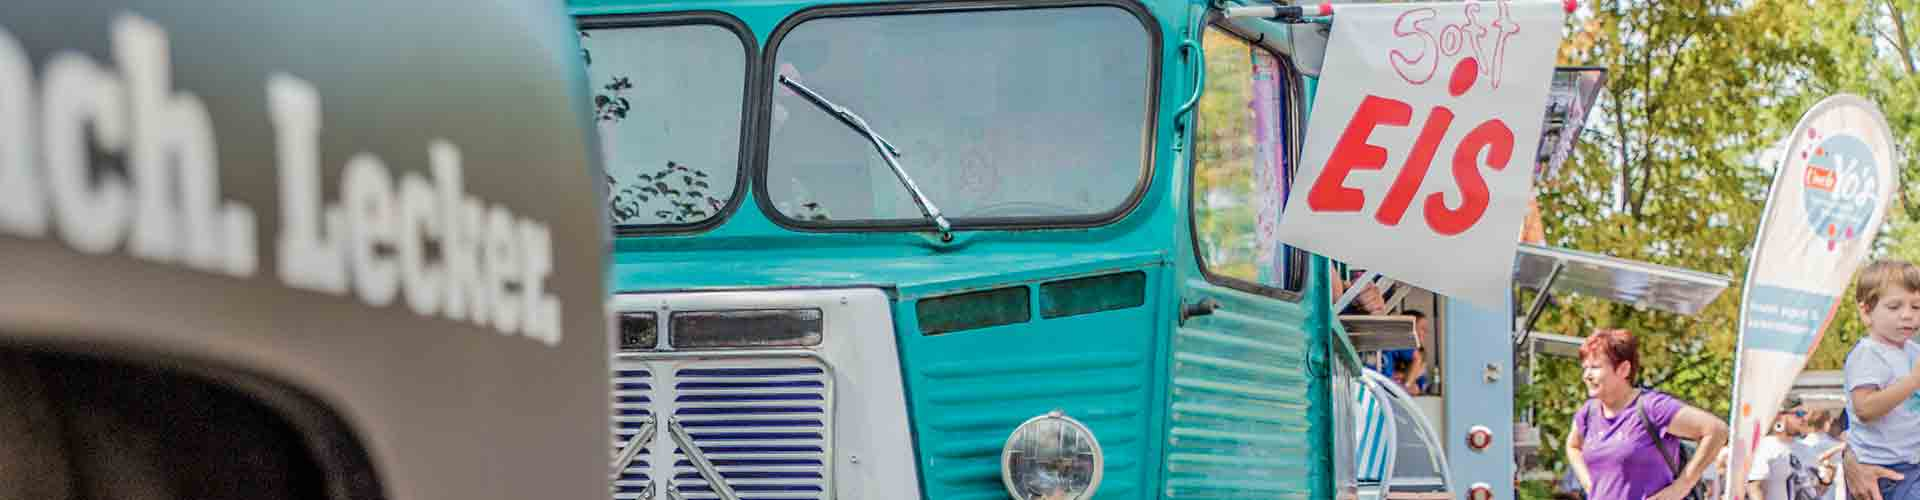 Foodtruck Citroen HY blau Softeis Fahne